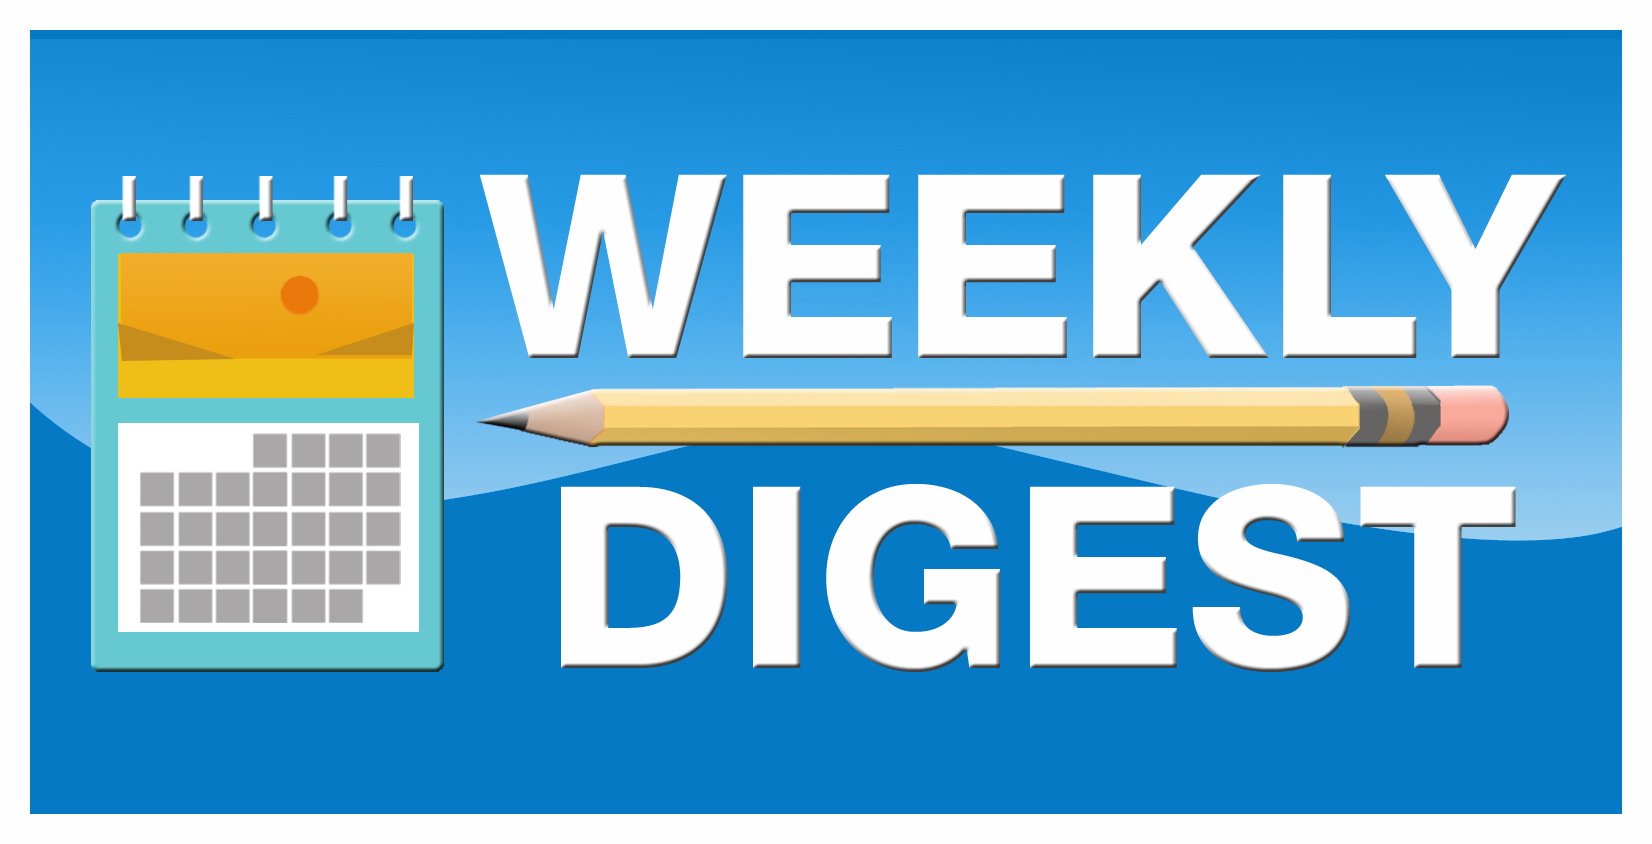 weekly-digest-logo-blue